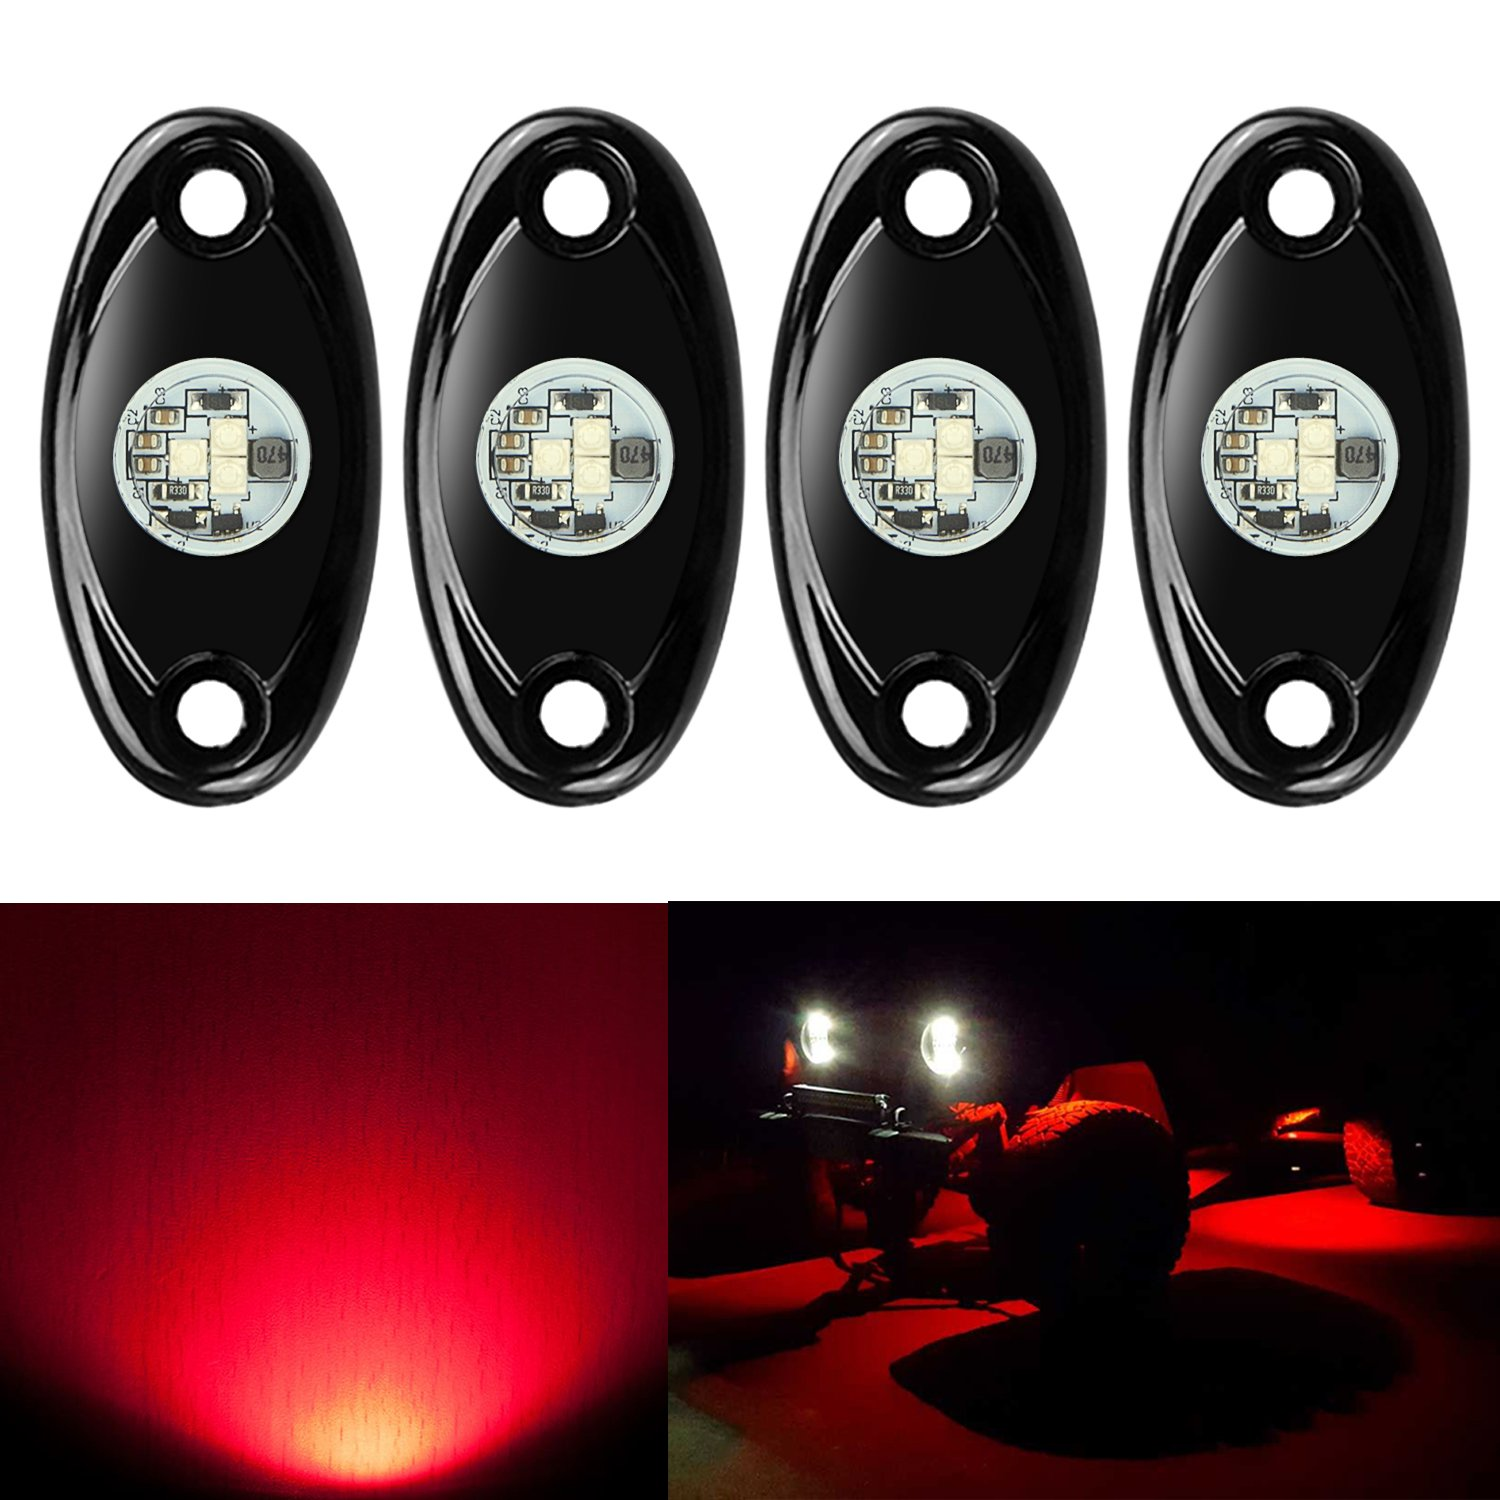 Amber Catinbow LED Rock Light Kits with 4 Pods Light for Car Truck JEEP ATV SUV UTV Offroad Motorcycle Underbody Glow Trail Rig Lights